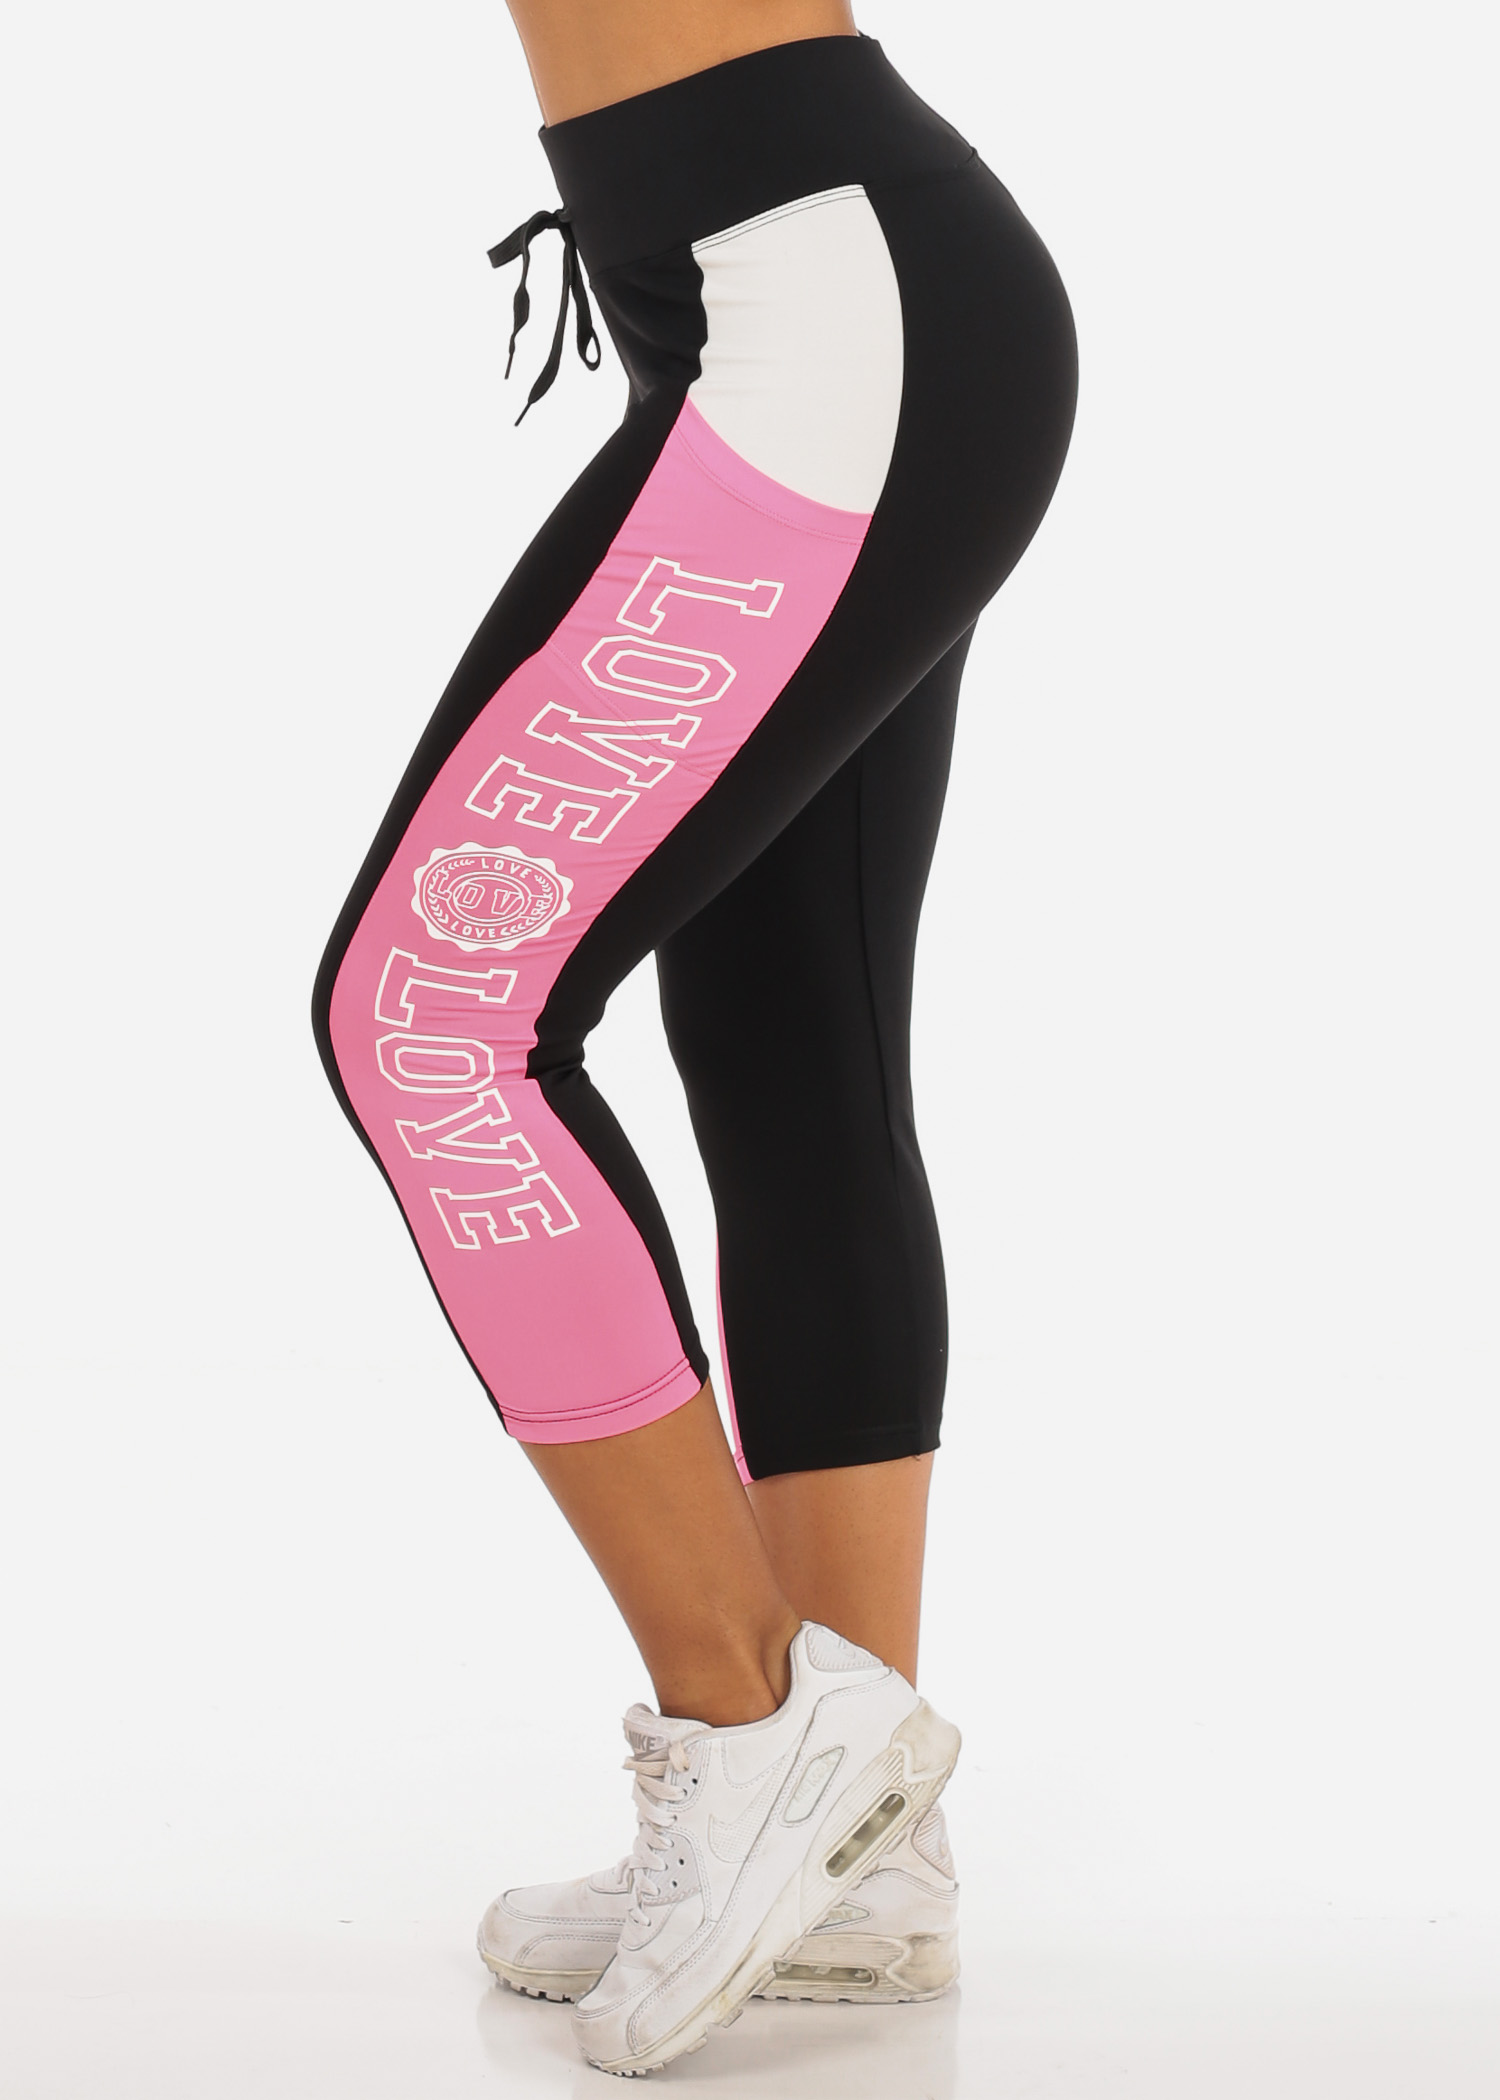 Womens Juniors Stretchy Activewear Sport Workout Gym Yoga Pink Love Black Cropped Capri Tights Leggings 41118W